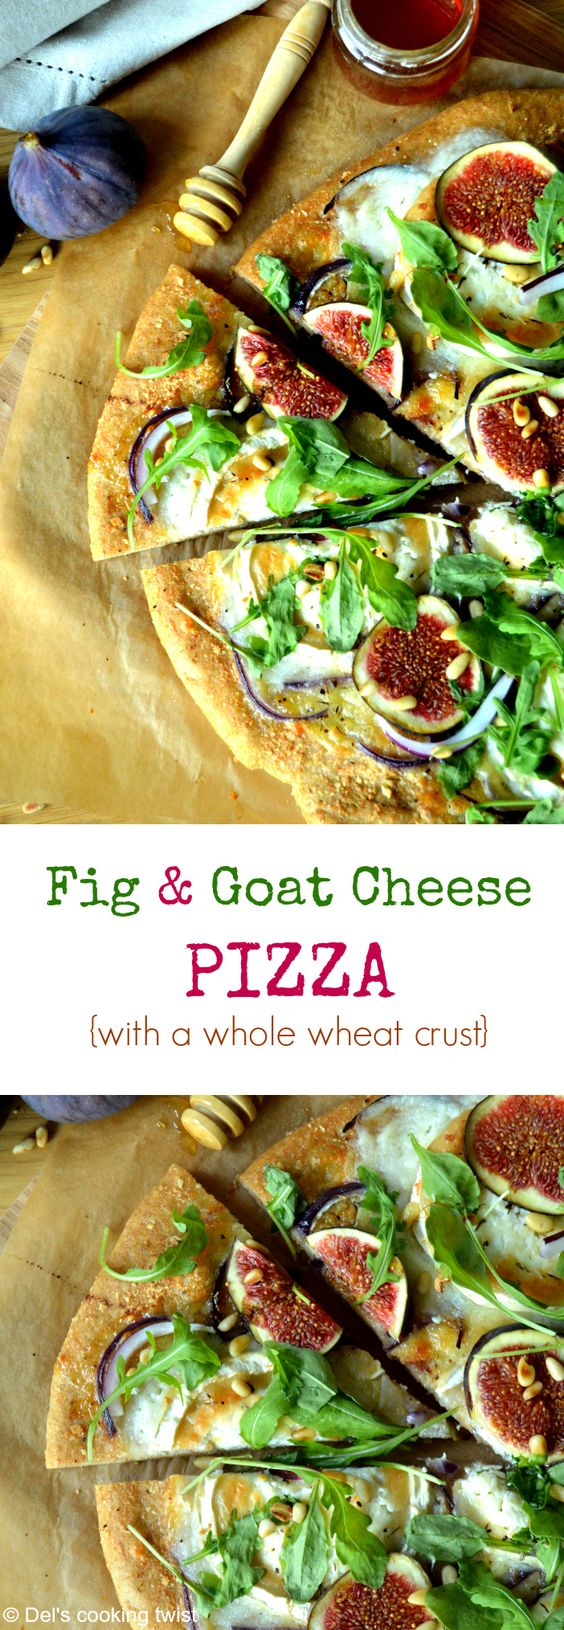 pizza yumo and more goat cheese pizza figs goat cheese goats pizza ...